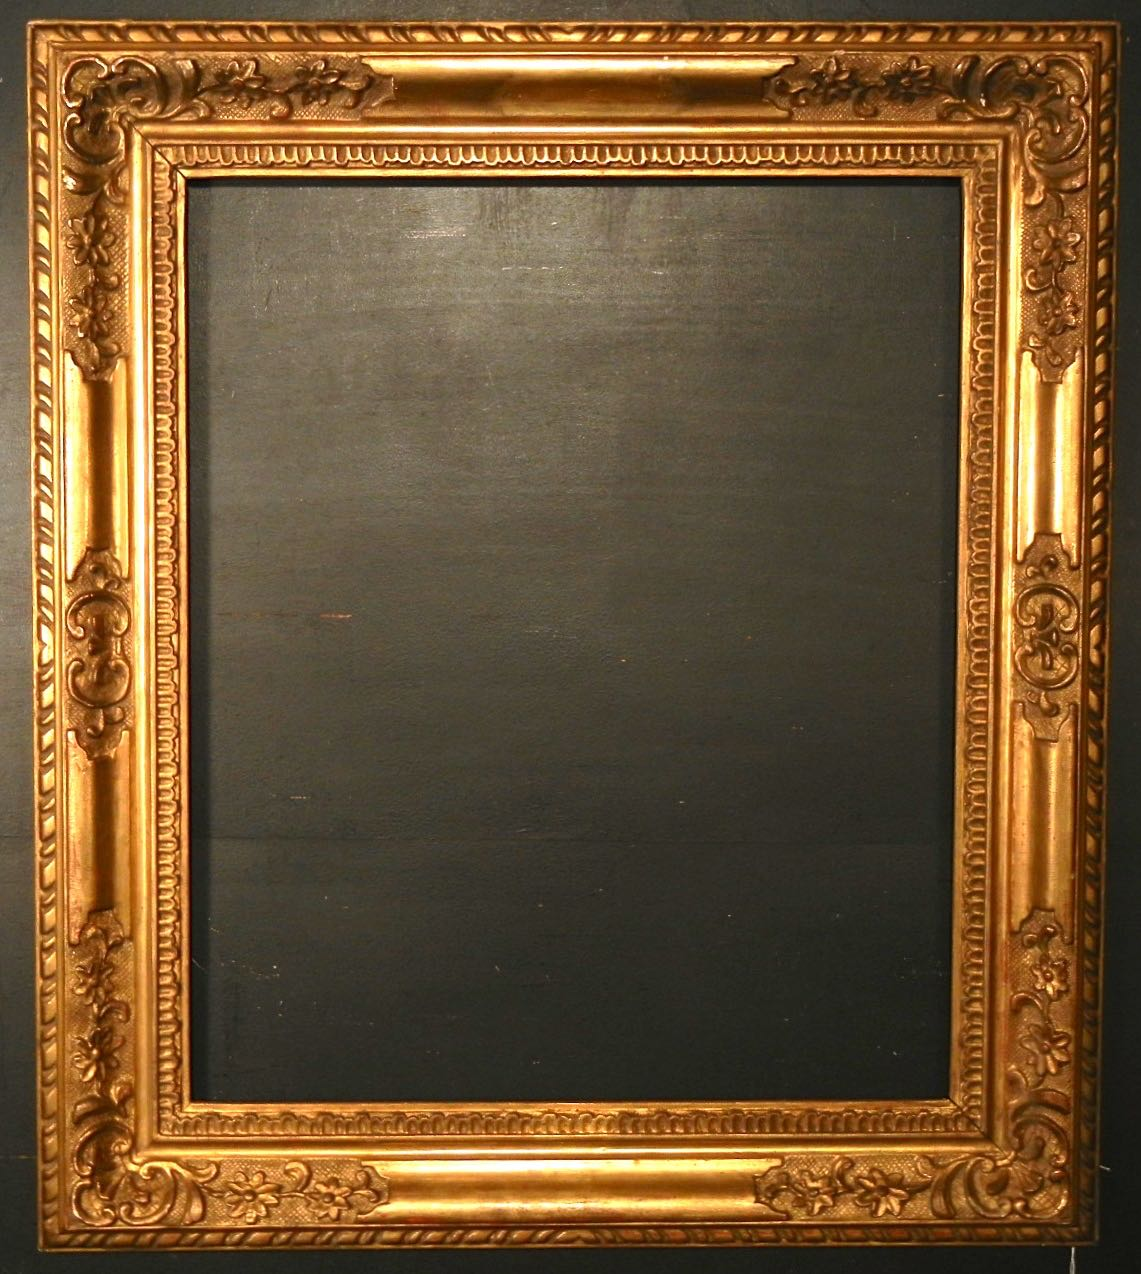 American arts crafts frame ammi ribar antiques fine frames american arts crafts frame jeuxipadfo Image collections